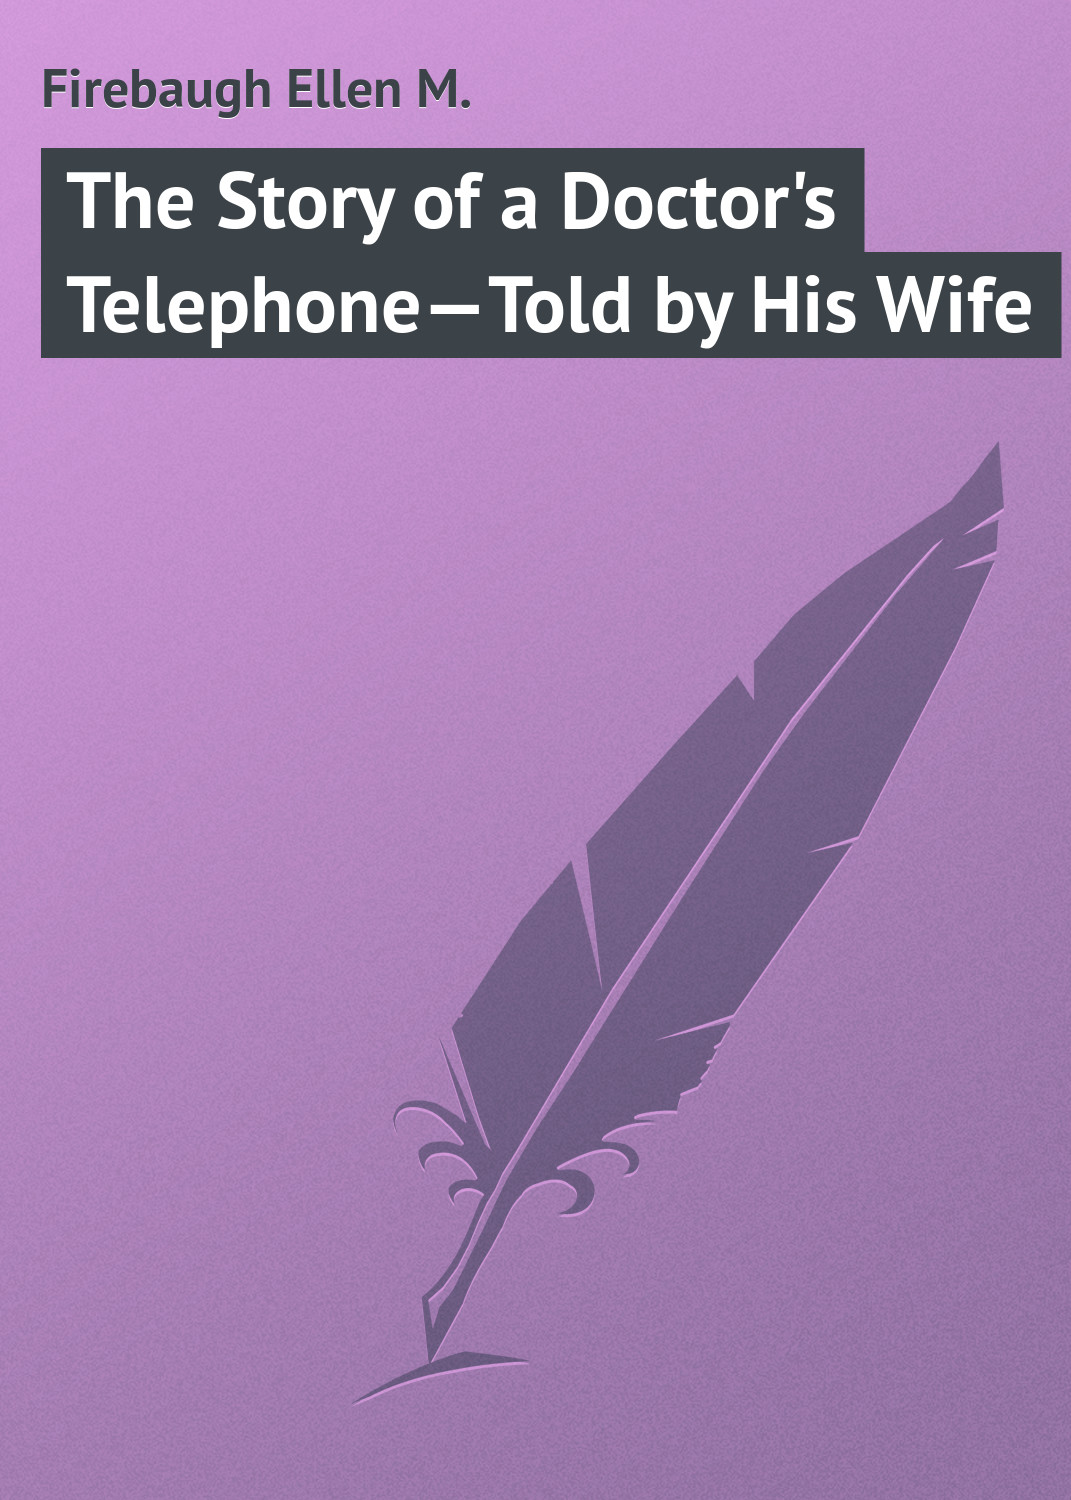 Firebaugh Ellen M. The Story of a Doctor's Telephone—Told by His Wife his story of re negotiation